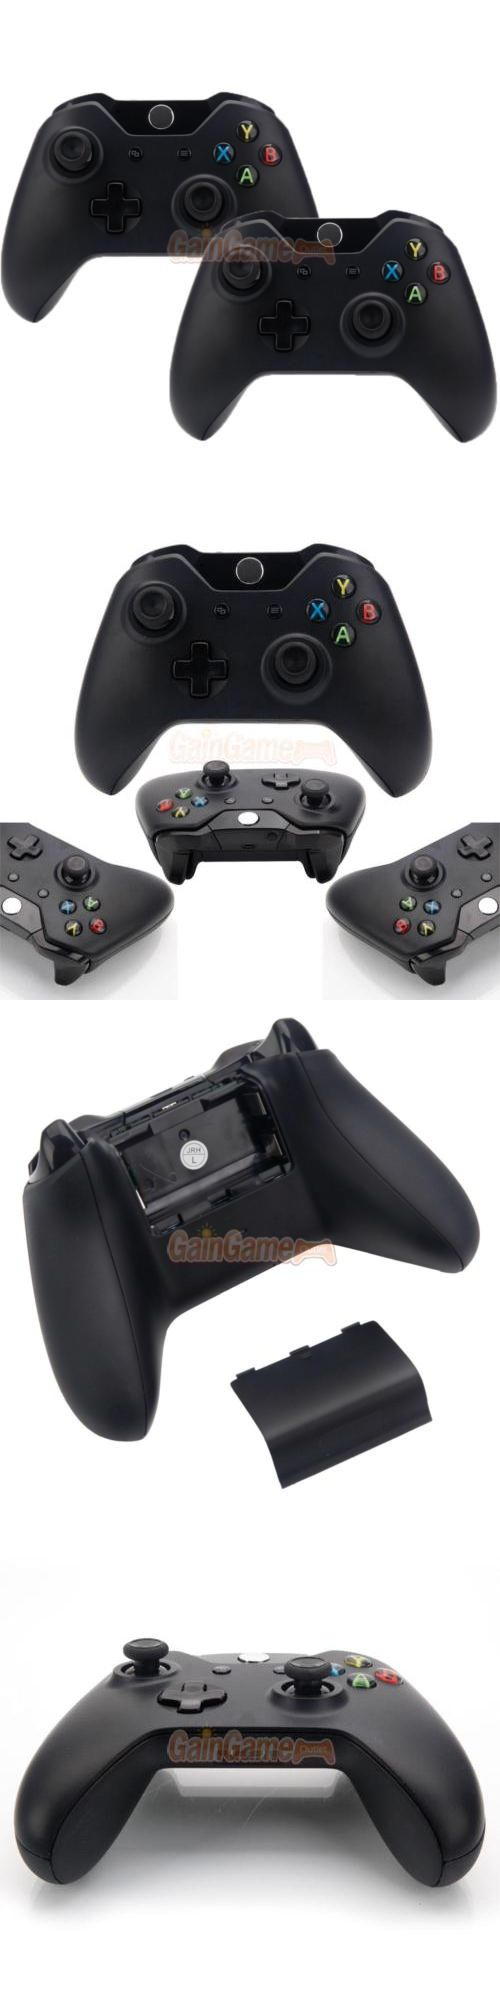 Video Gaming: 2X New Wireless Game Controller For Microsoft Xbox One Usa Seller Free Shipping BUY IT NOW ONLY: $52.99